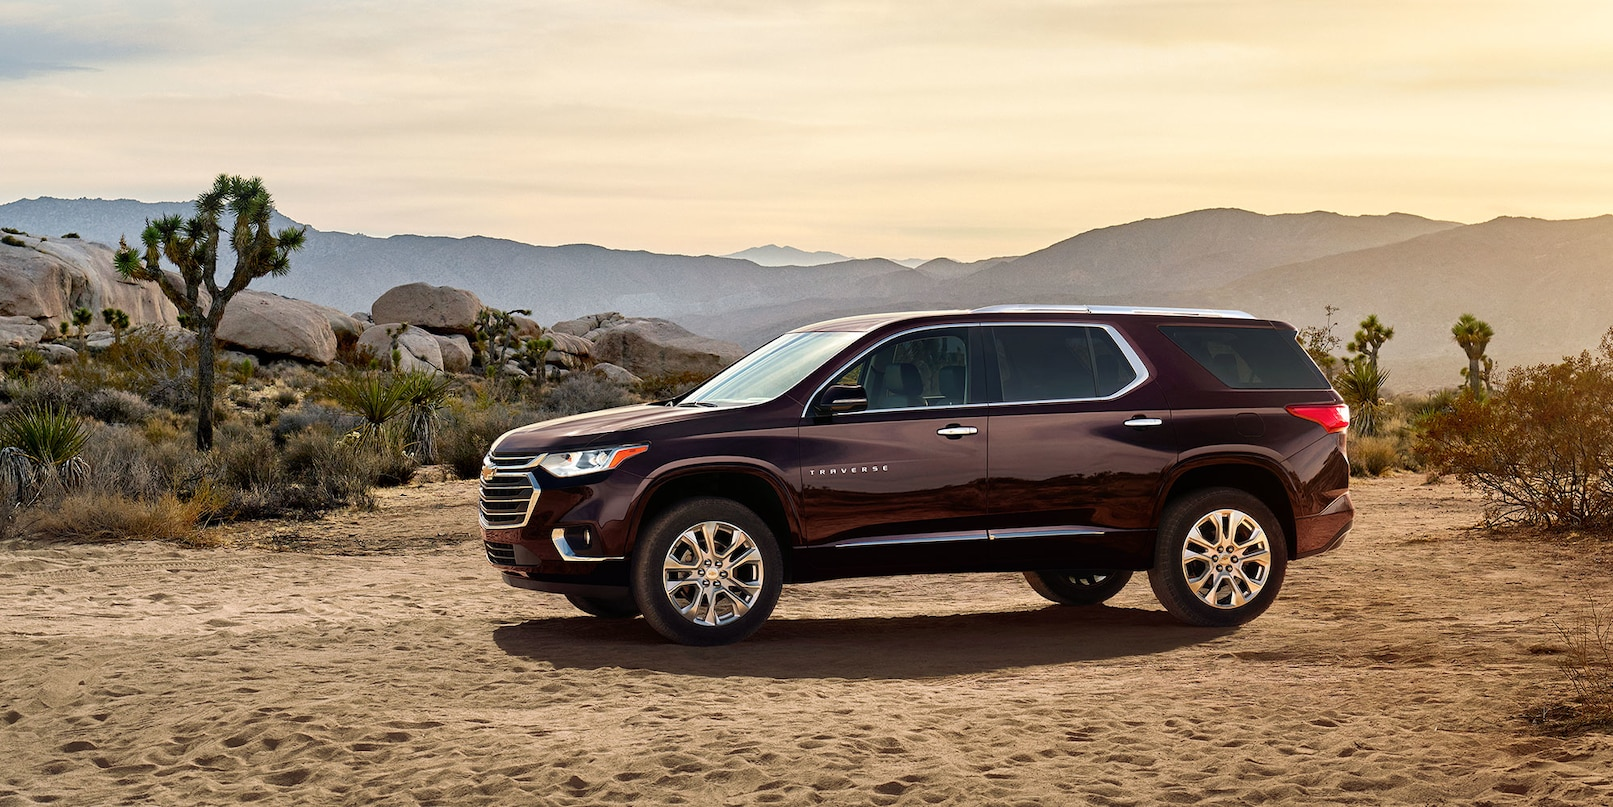 2019 Chevrolet Traverse Features and Benefits near Escondido, CA